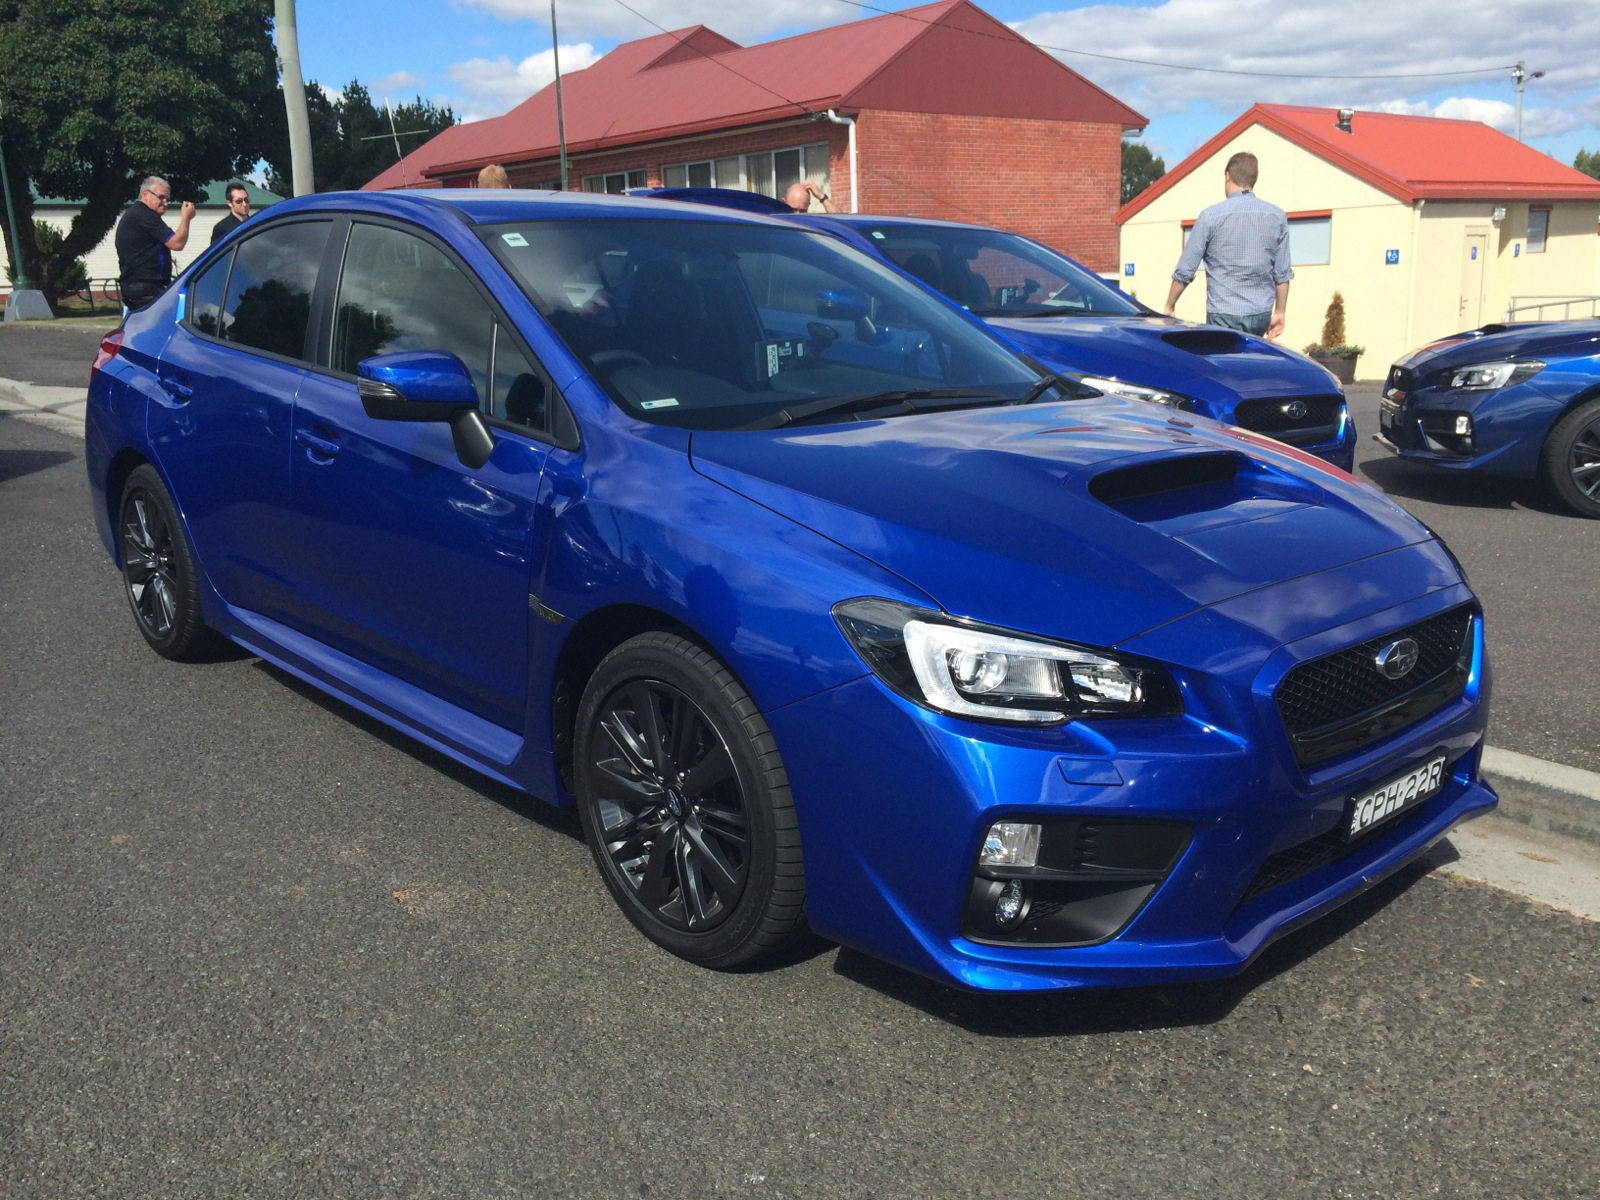 21 amazing 2015 subaru wrx review. Black Bedroom Furniture Sets. Home Design Ideas